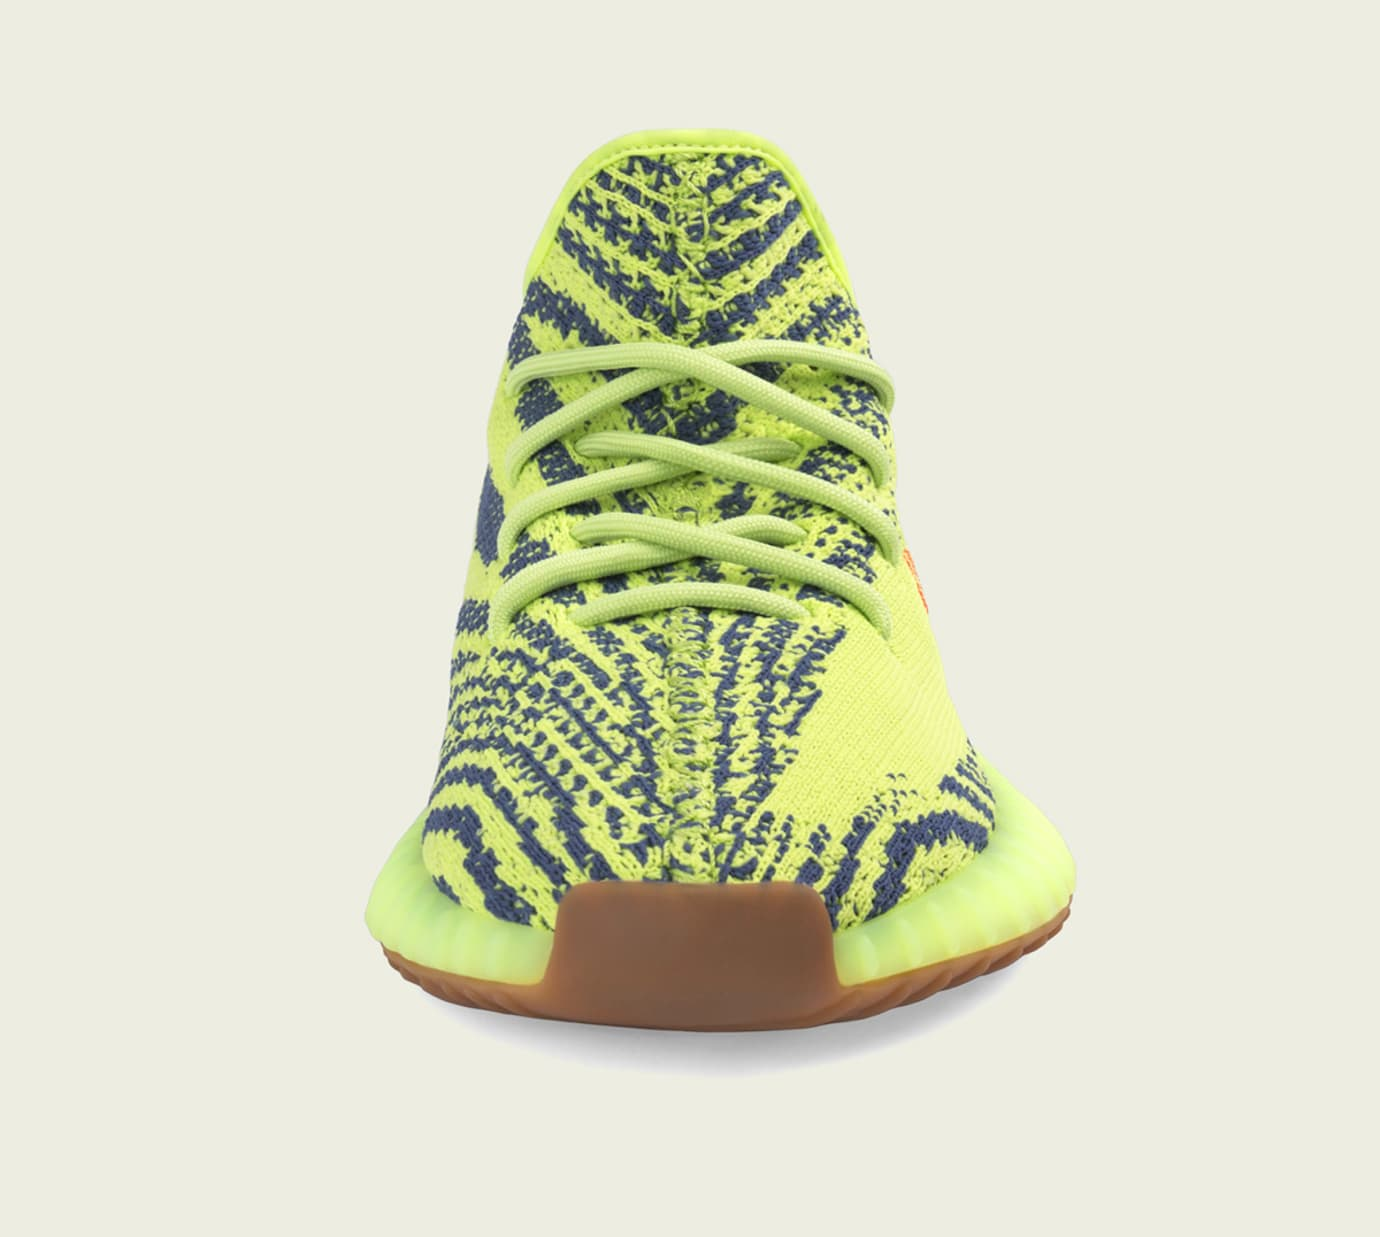 Semi Frozen Yellow Adidas Yeezy Boost 350 V2 Toe